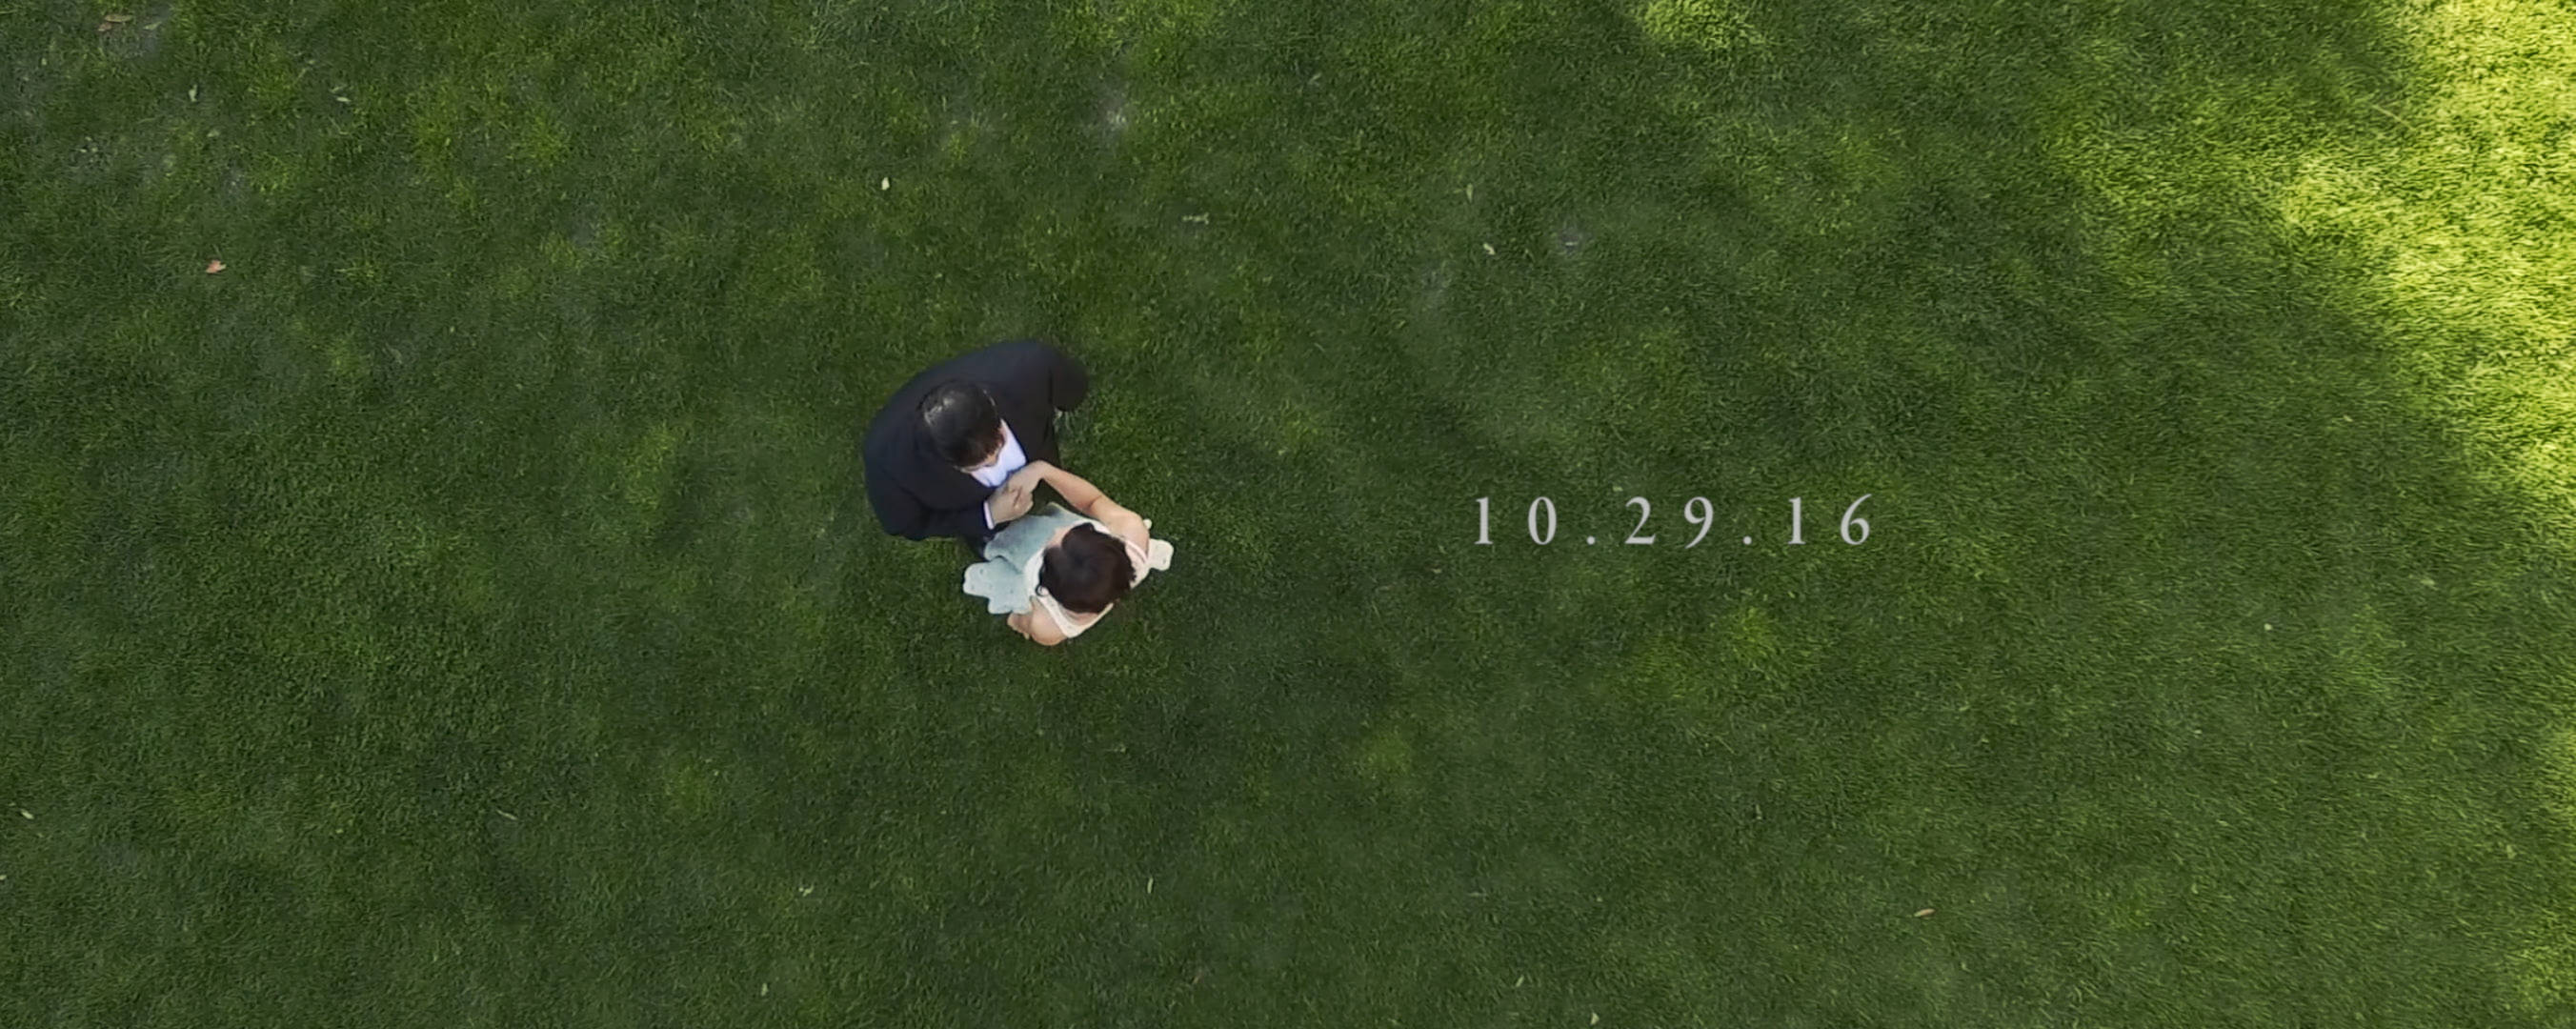 Engagement Trailer: JaeEun & Shawn